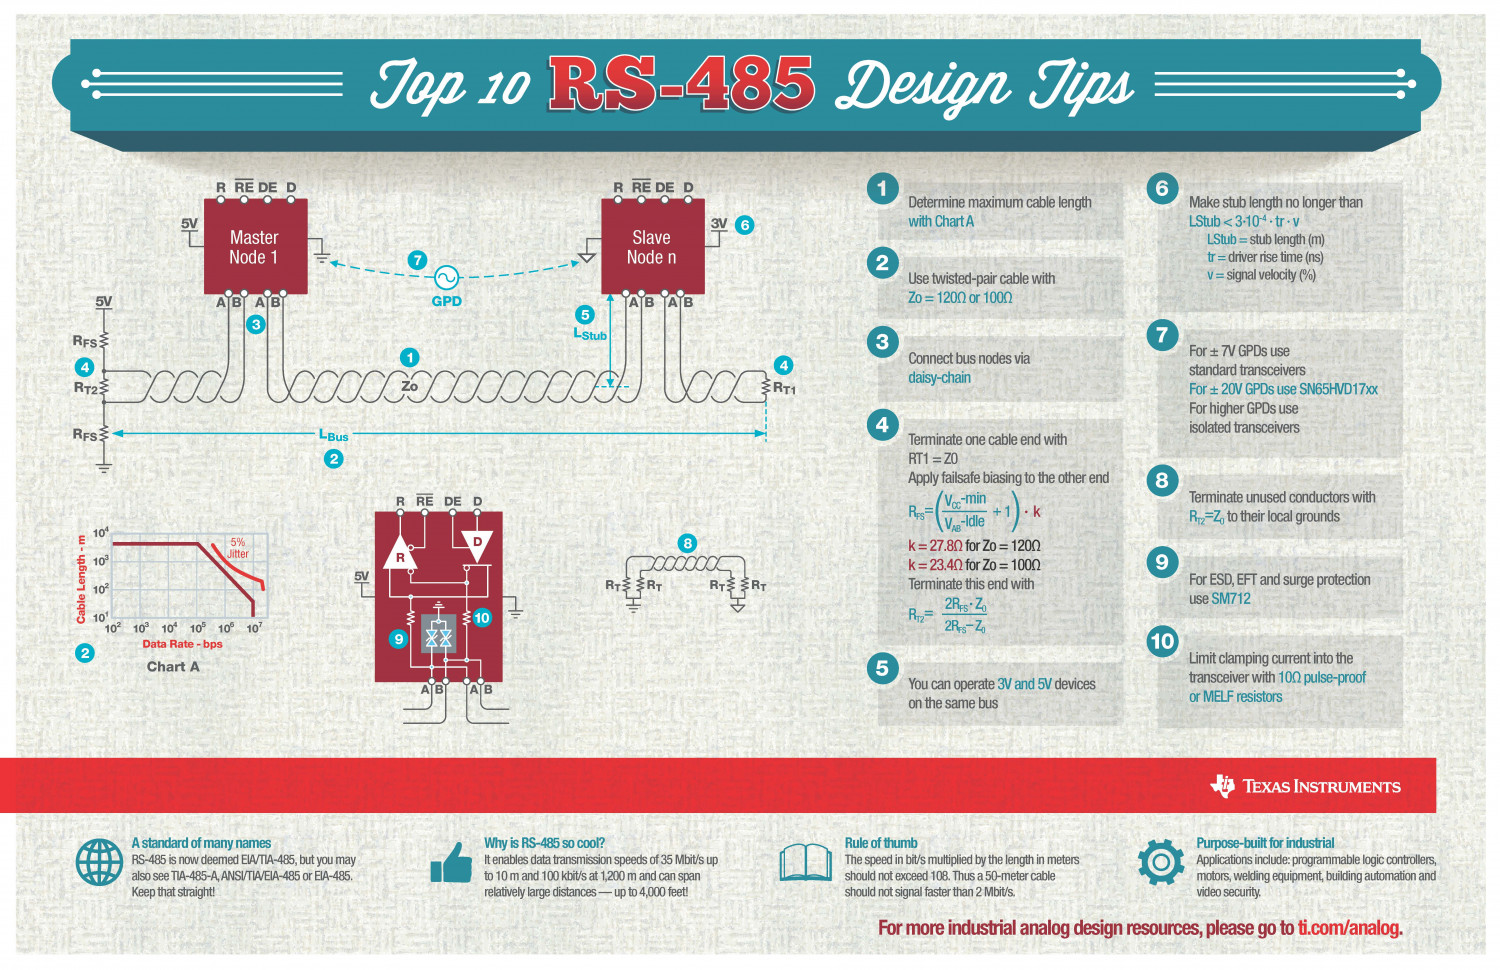 Top 10 RS-485 Design Tips Infographic